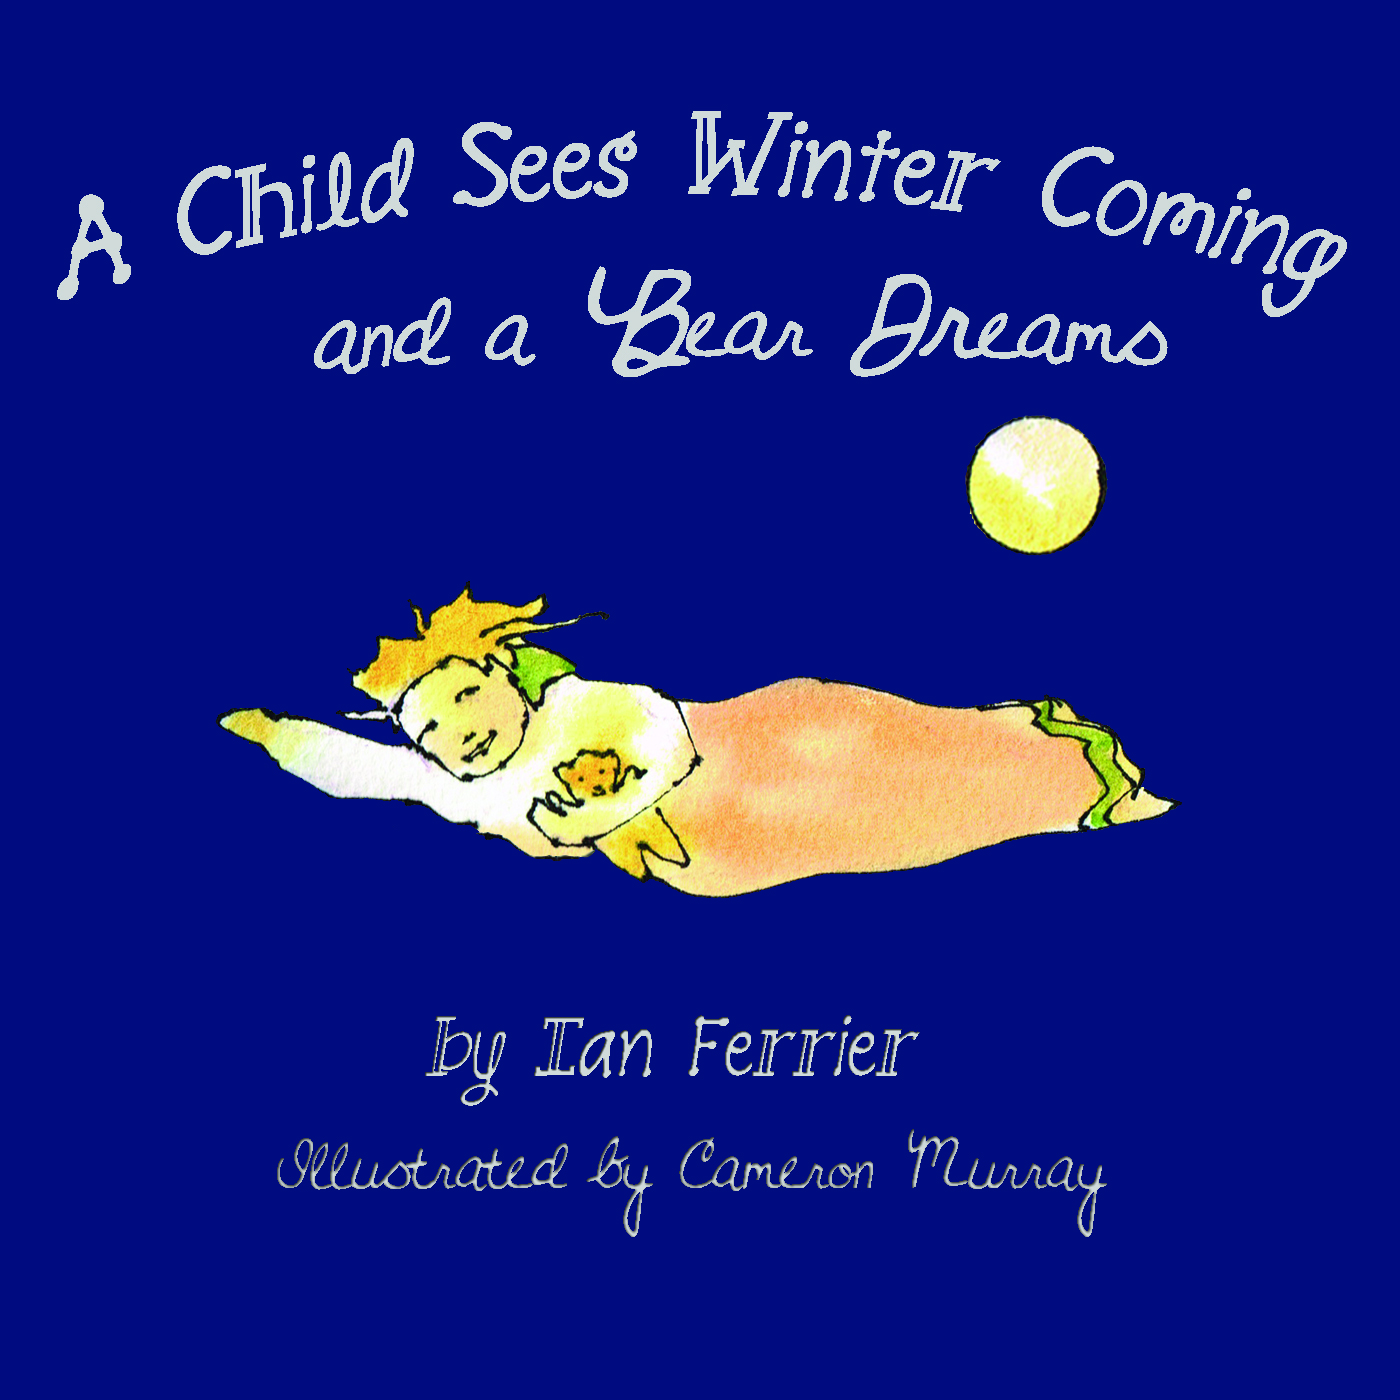 A Child Cover1 copy.jpg